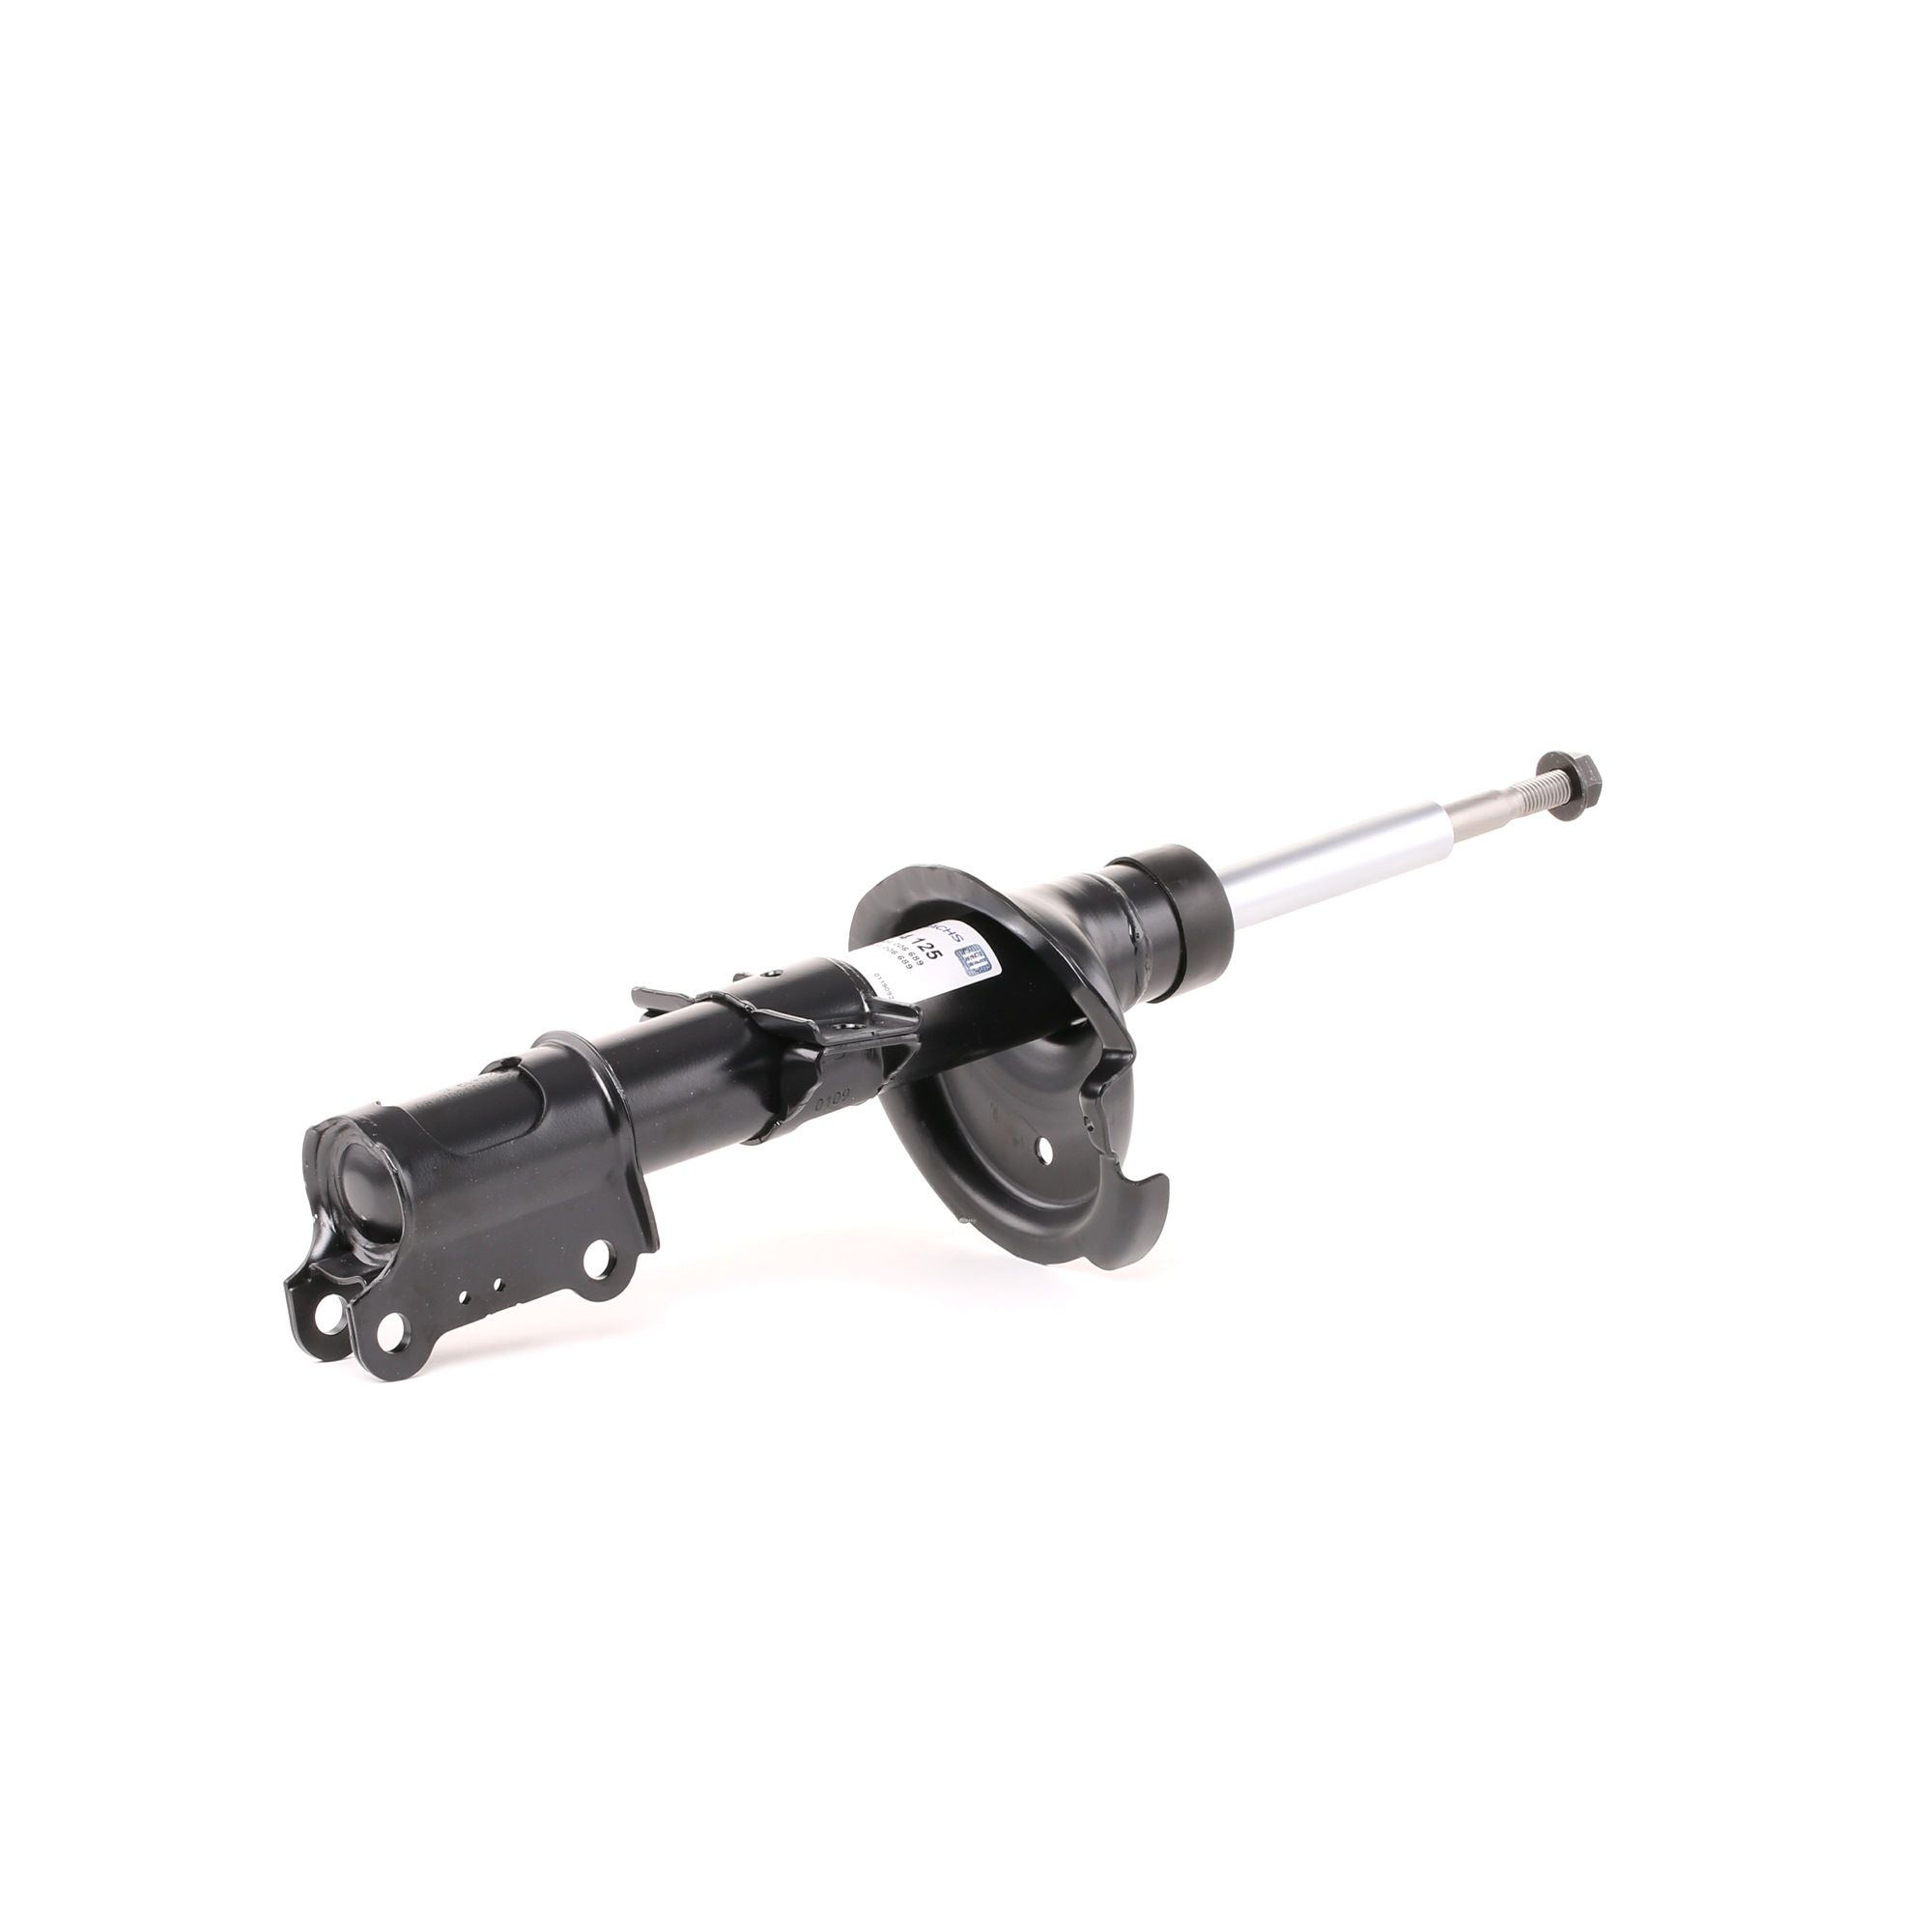 Volvo XC 90 Estate 2002-On Sachs 314125 Front Gas Shock Absorber Strut Twin-Tube